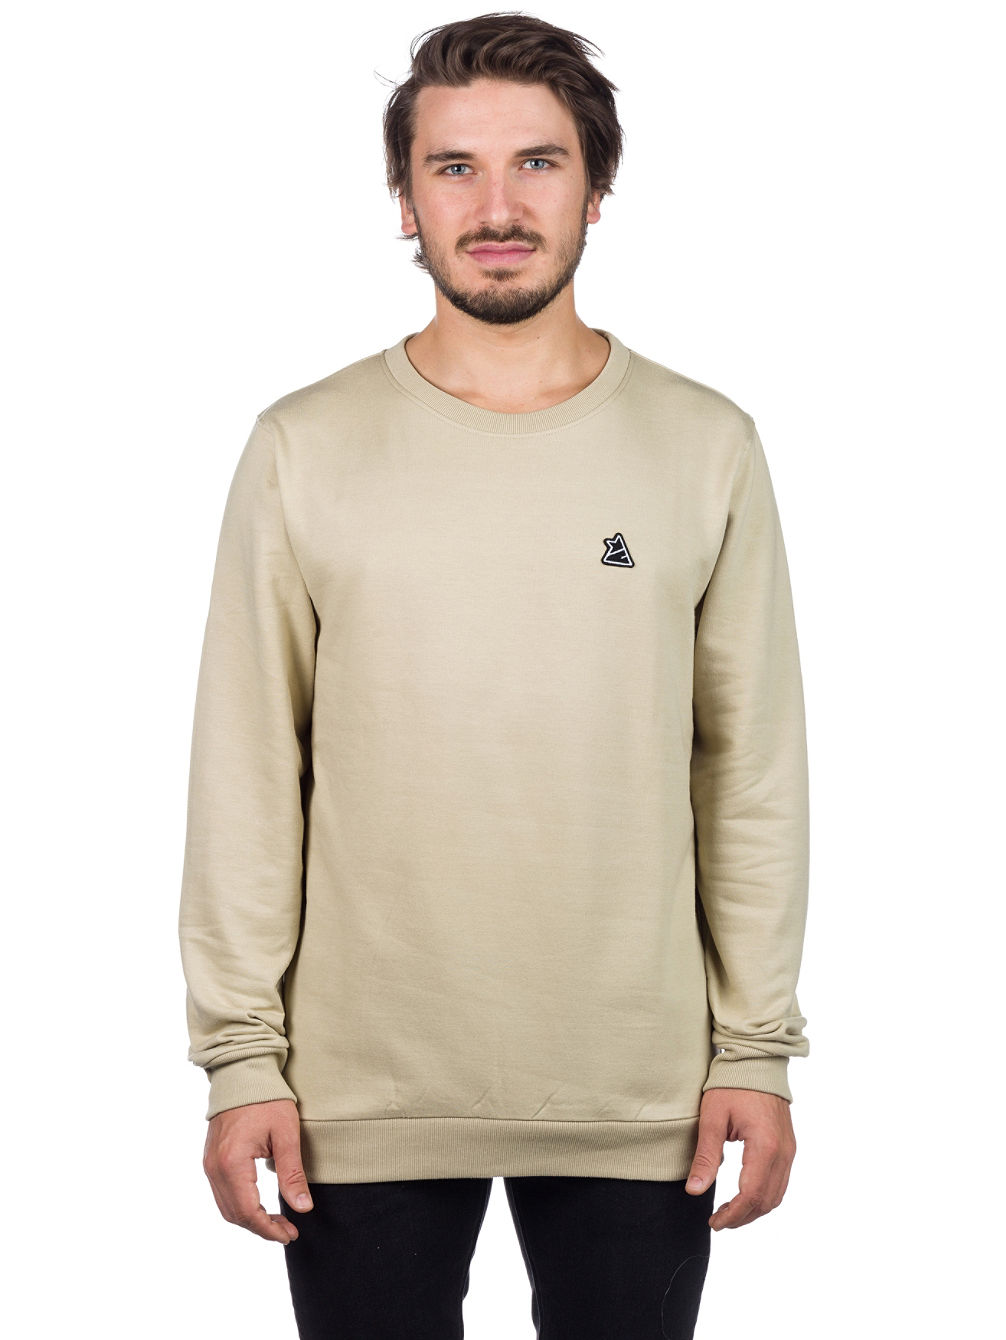 Zicon Sweater